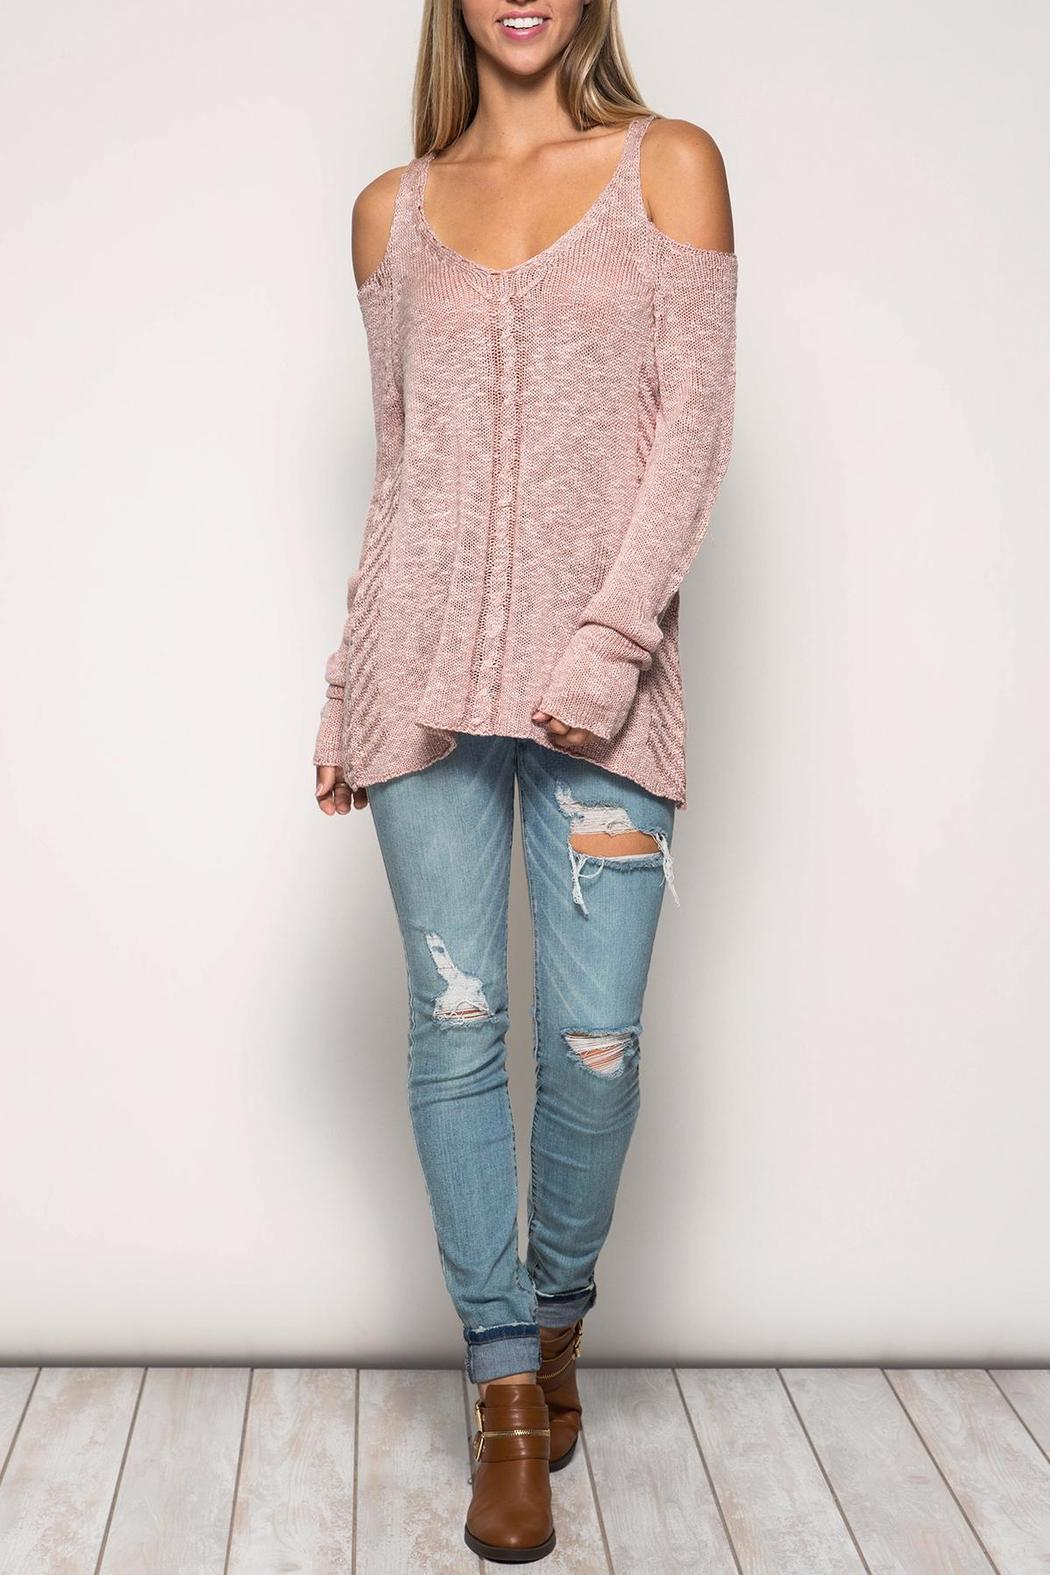 She   Sky Dusty Pink Sweater from New York by Isabella's Boutique ...